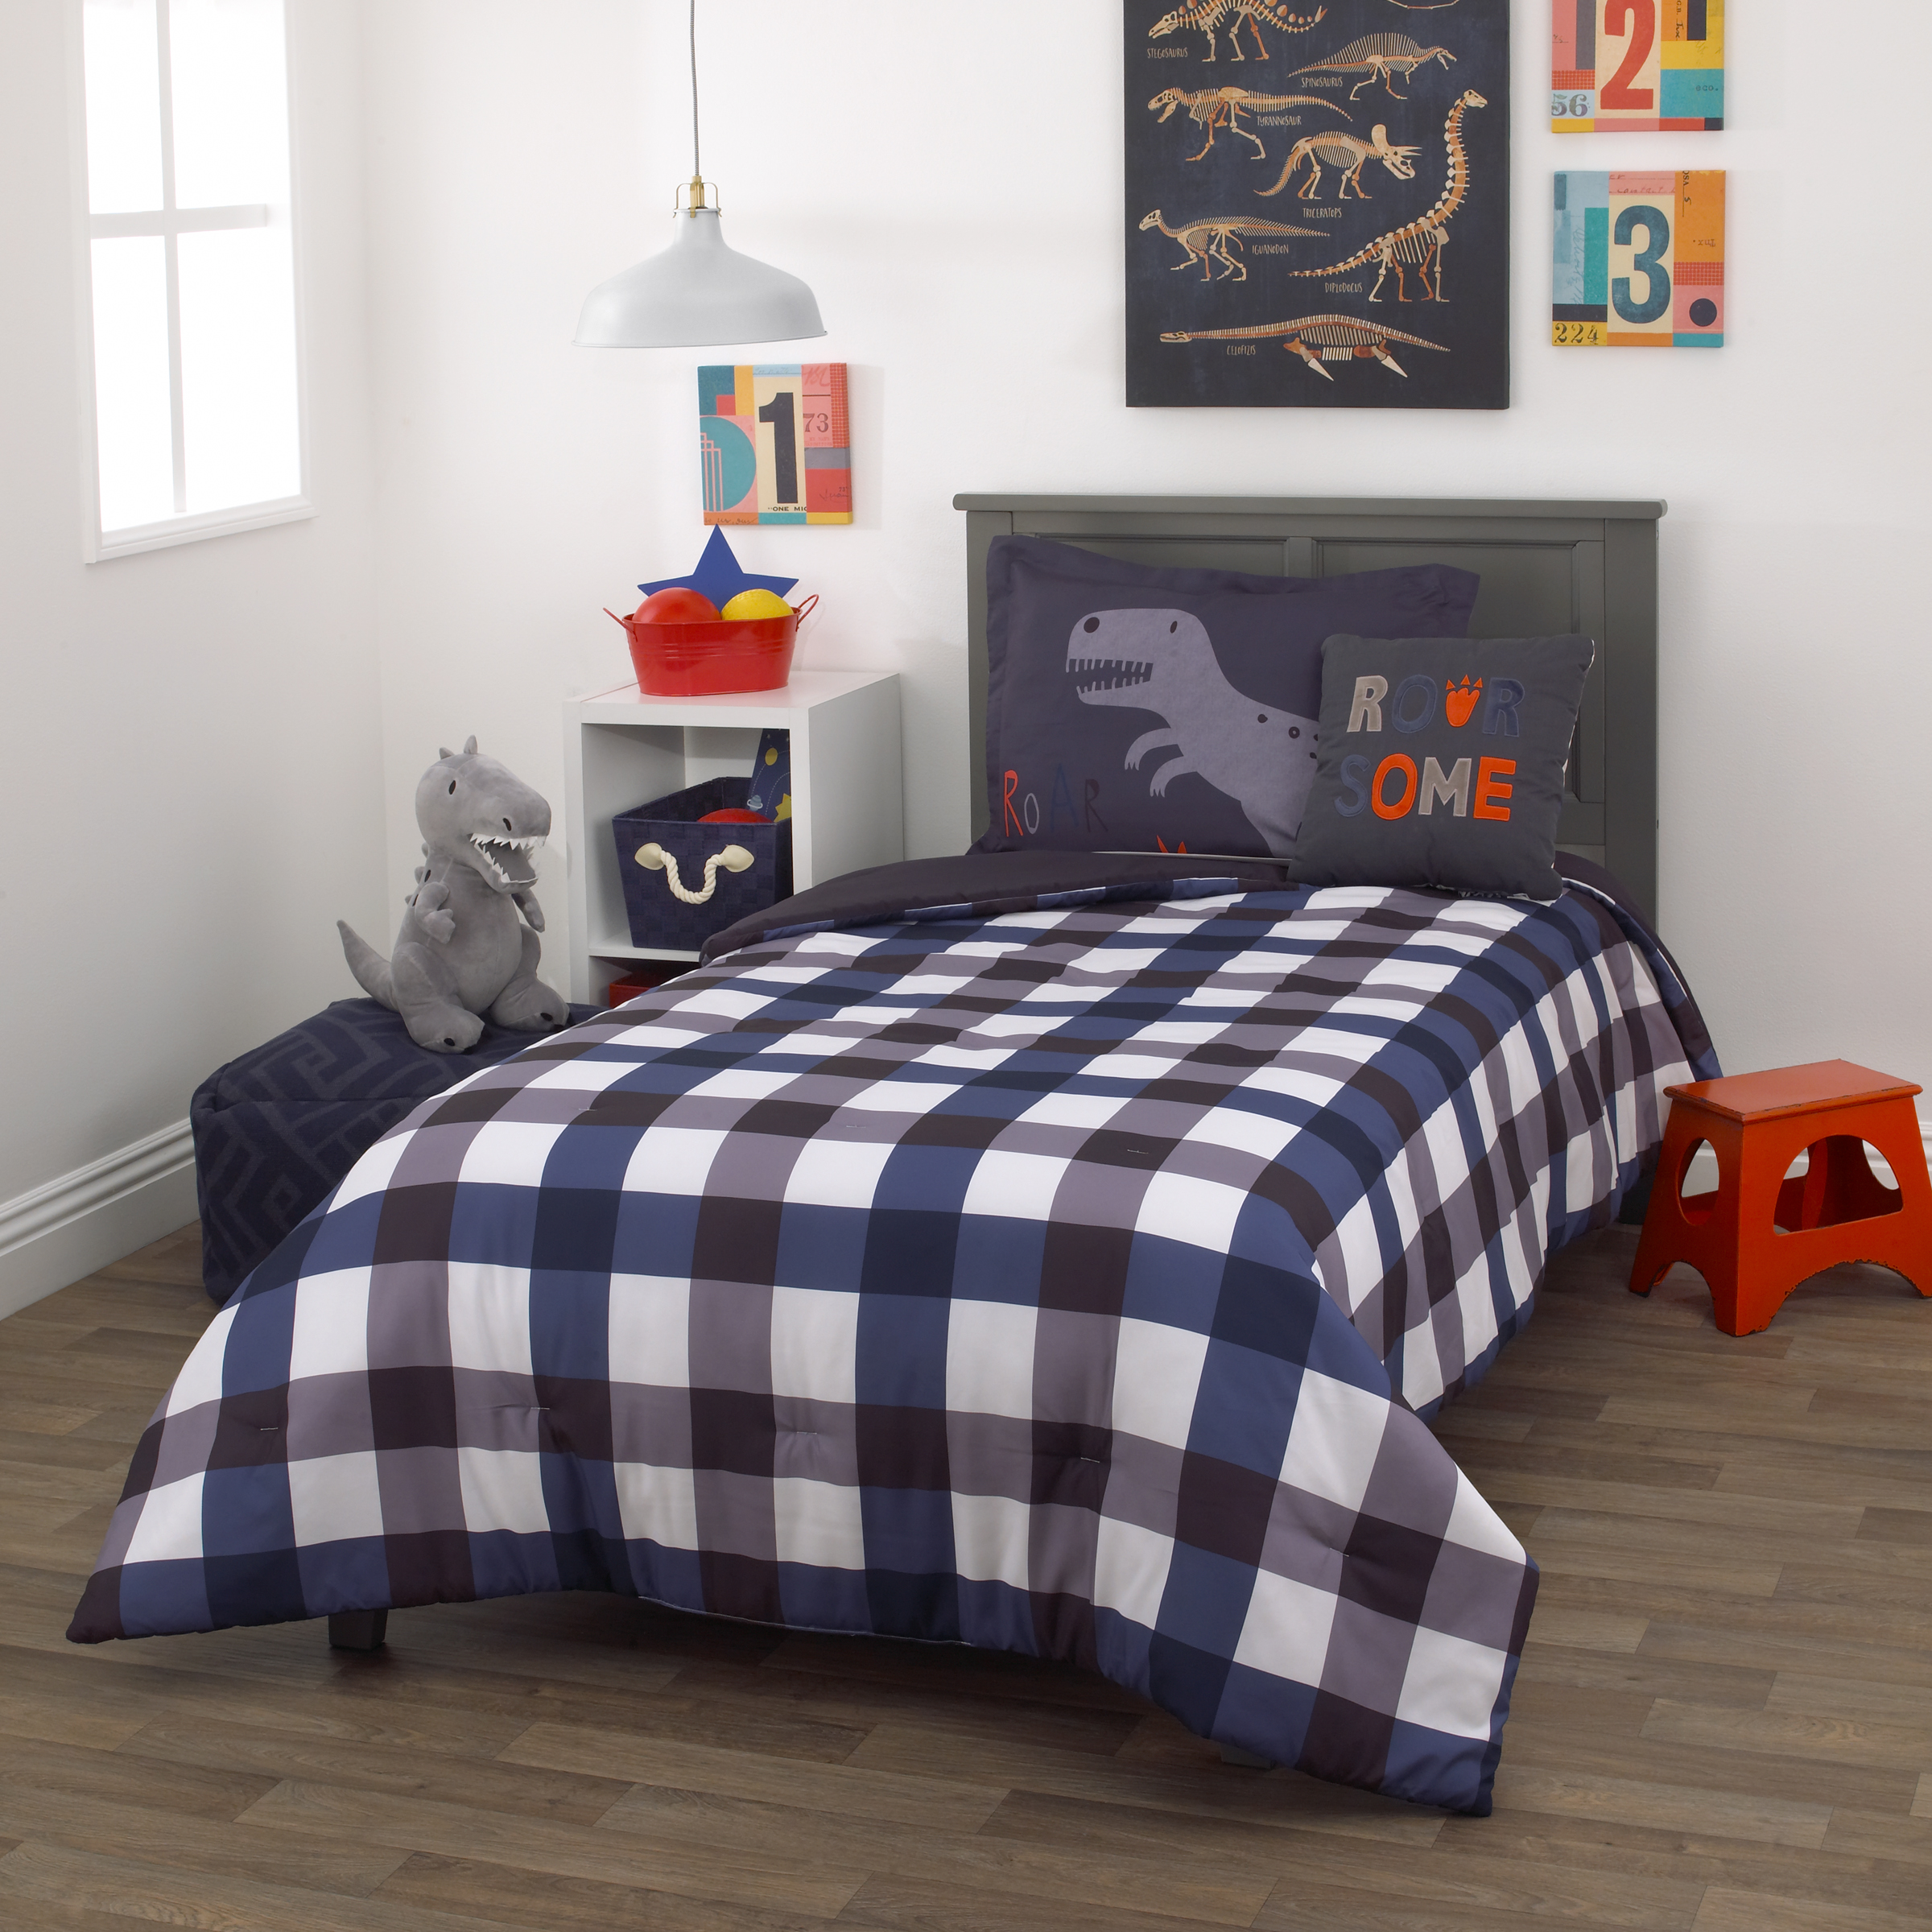 Everything Kids Roarsome Grey And Navy 2 Piece Twin Bedding Set 1 Twin Comforter 1 Pillow Sham Walmart Com Walmart Com